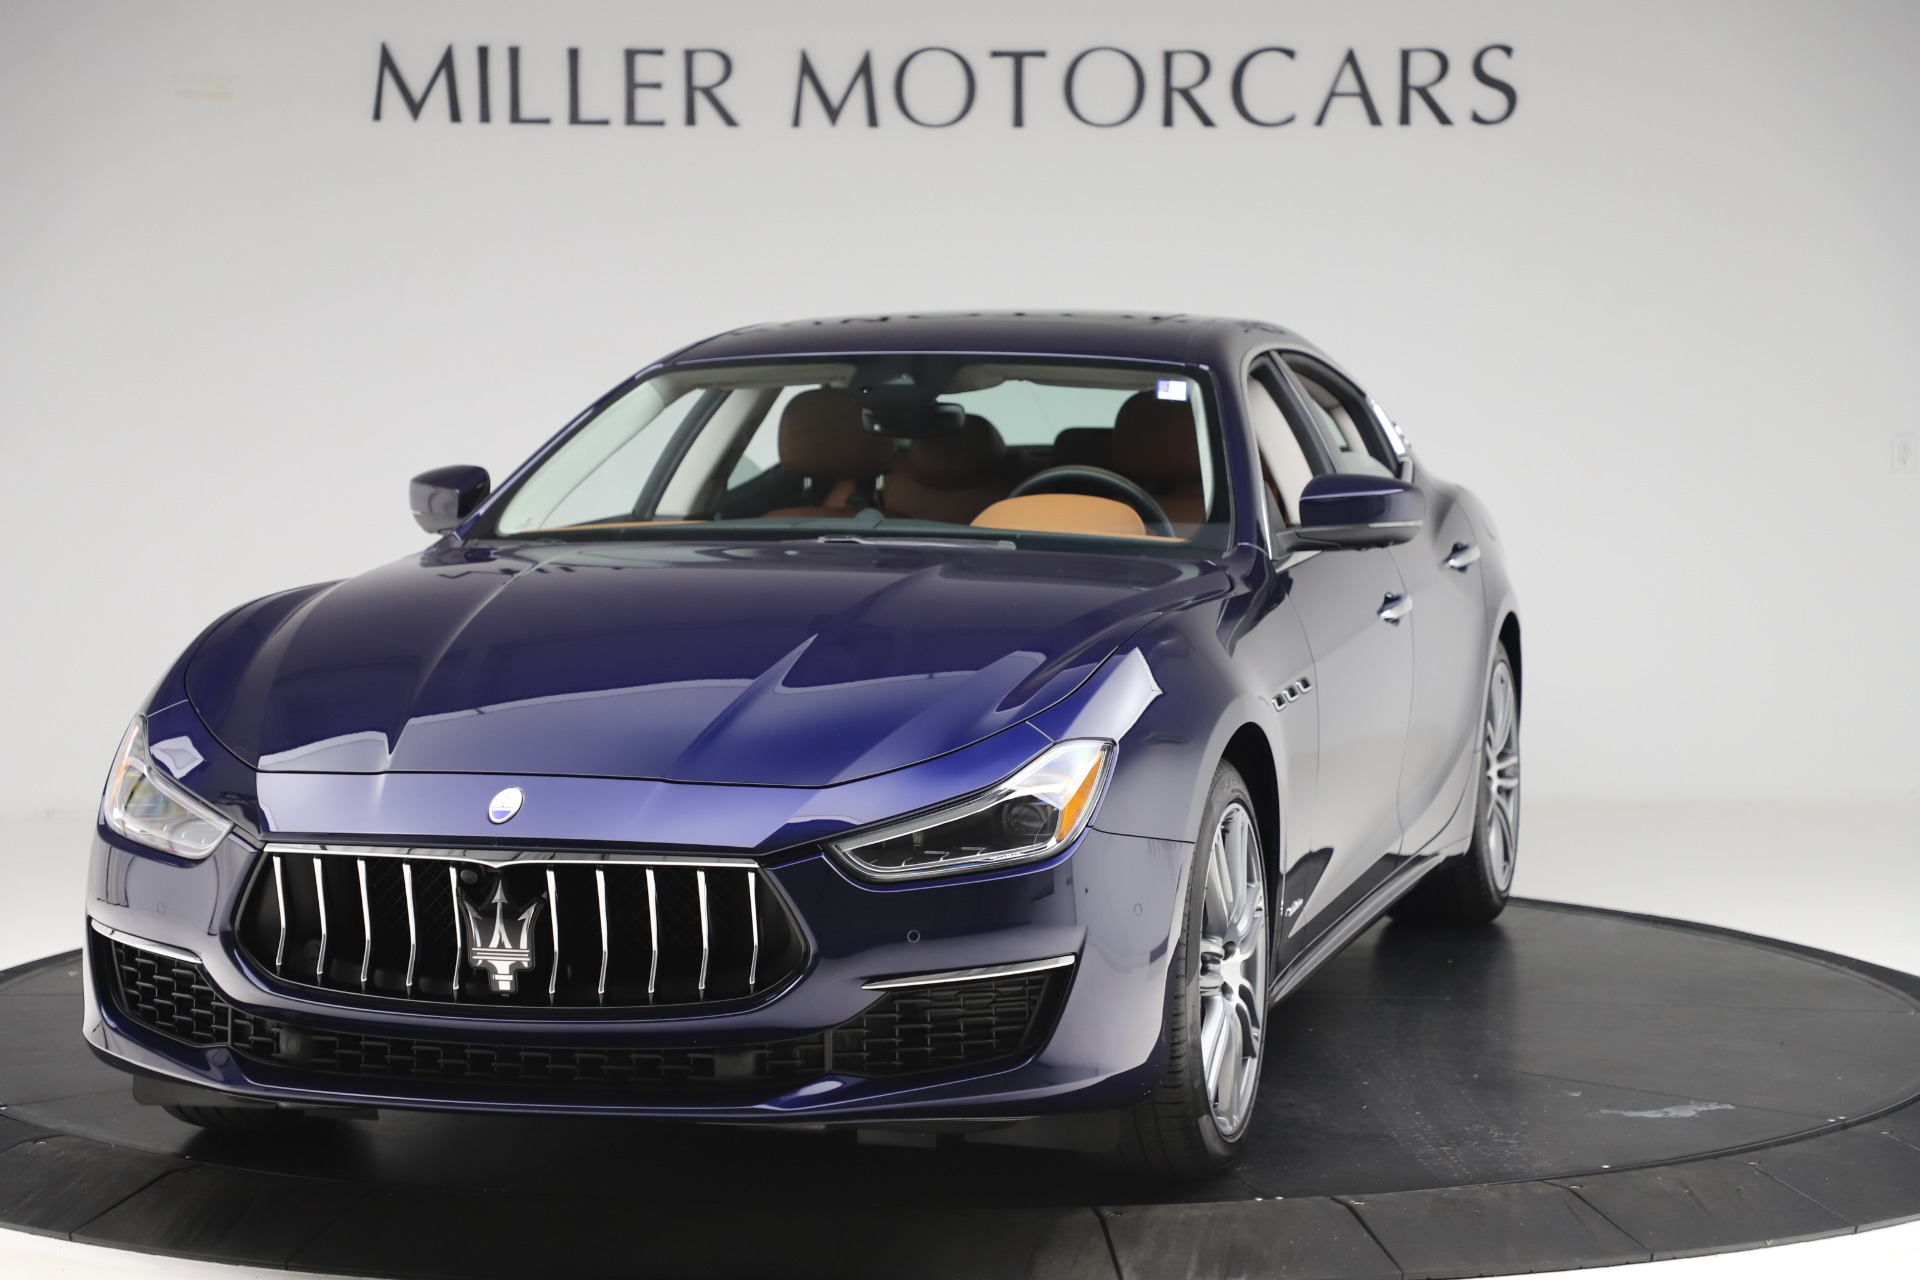 New 2020 Maserati Ghibli S Q4 GranLusso for sale $89,535 at Rolls-Royce Motor Cars Greenwich in Greenwich CT 06830 1